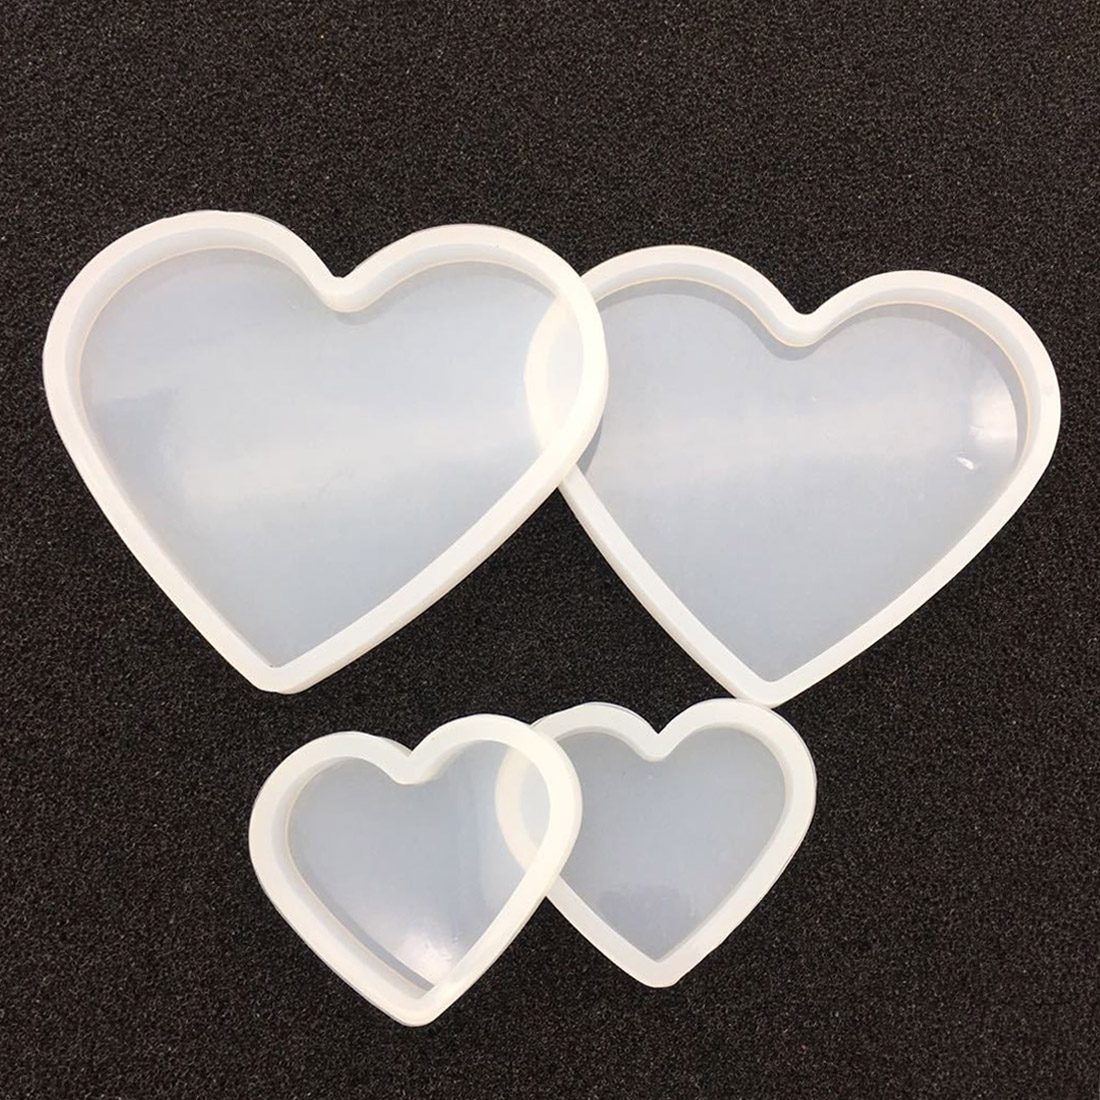 Large round heart shaped Decorative ornaments DIY Resin Craft Jewelry Making Mold Silicone Mould epoxy resin mold for jewelry